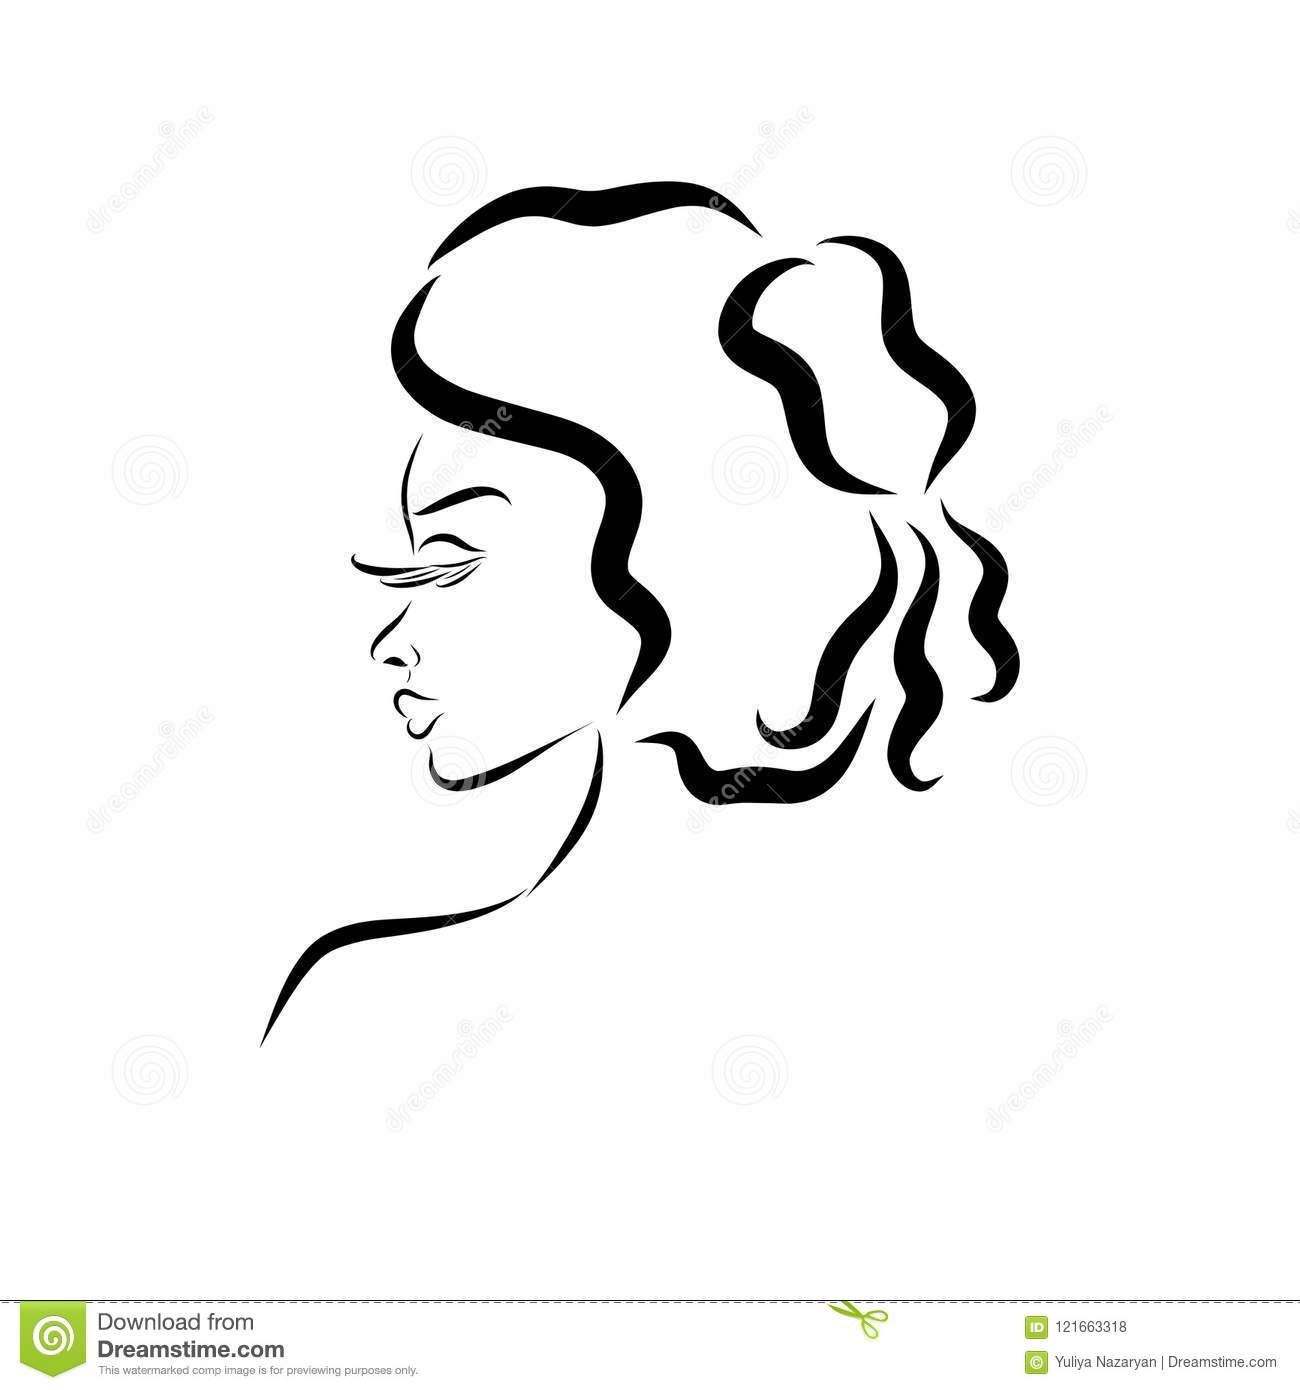 Profile of a charming lady with an aristocratic hairdo